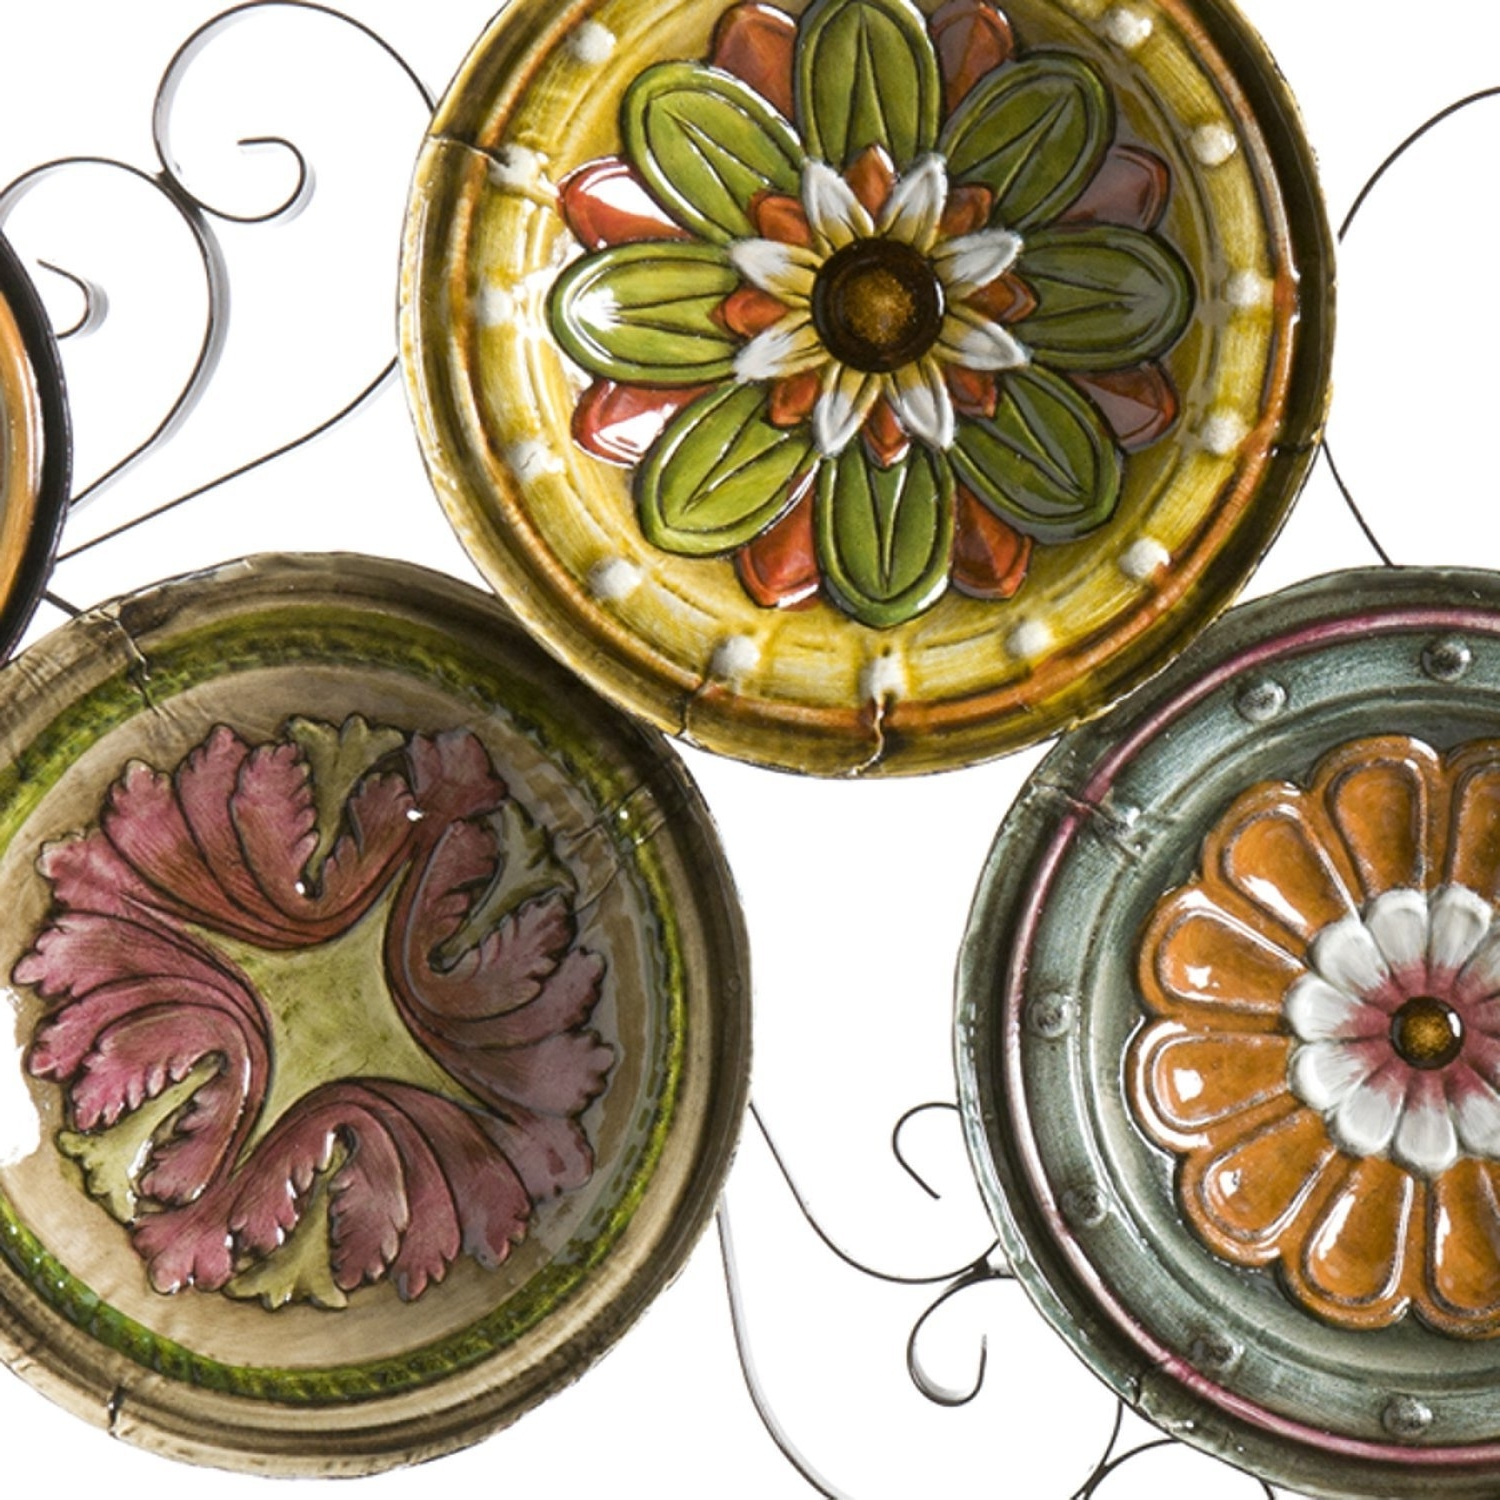 Scattered Italian Plates Wall Art Within Most Popular Amazon: Scattered Italian Plates Wall Art: Home & Kitchen (Gallery 4 of 15)